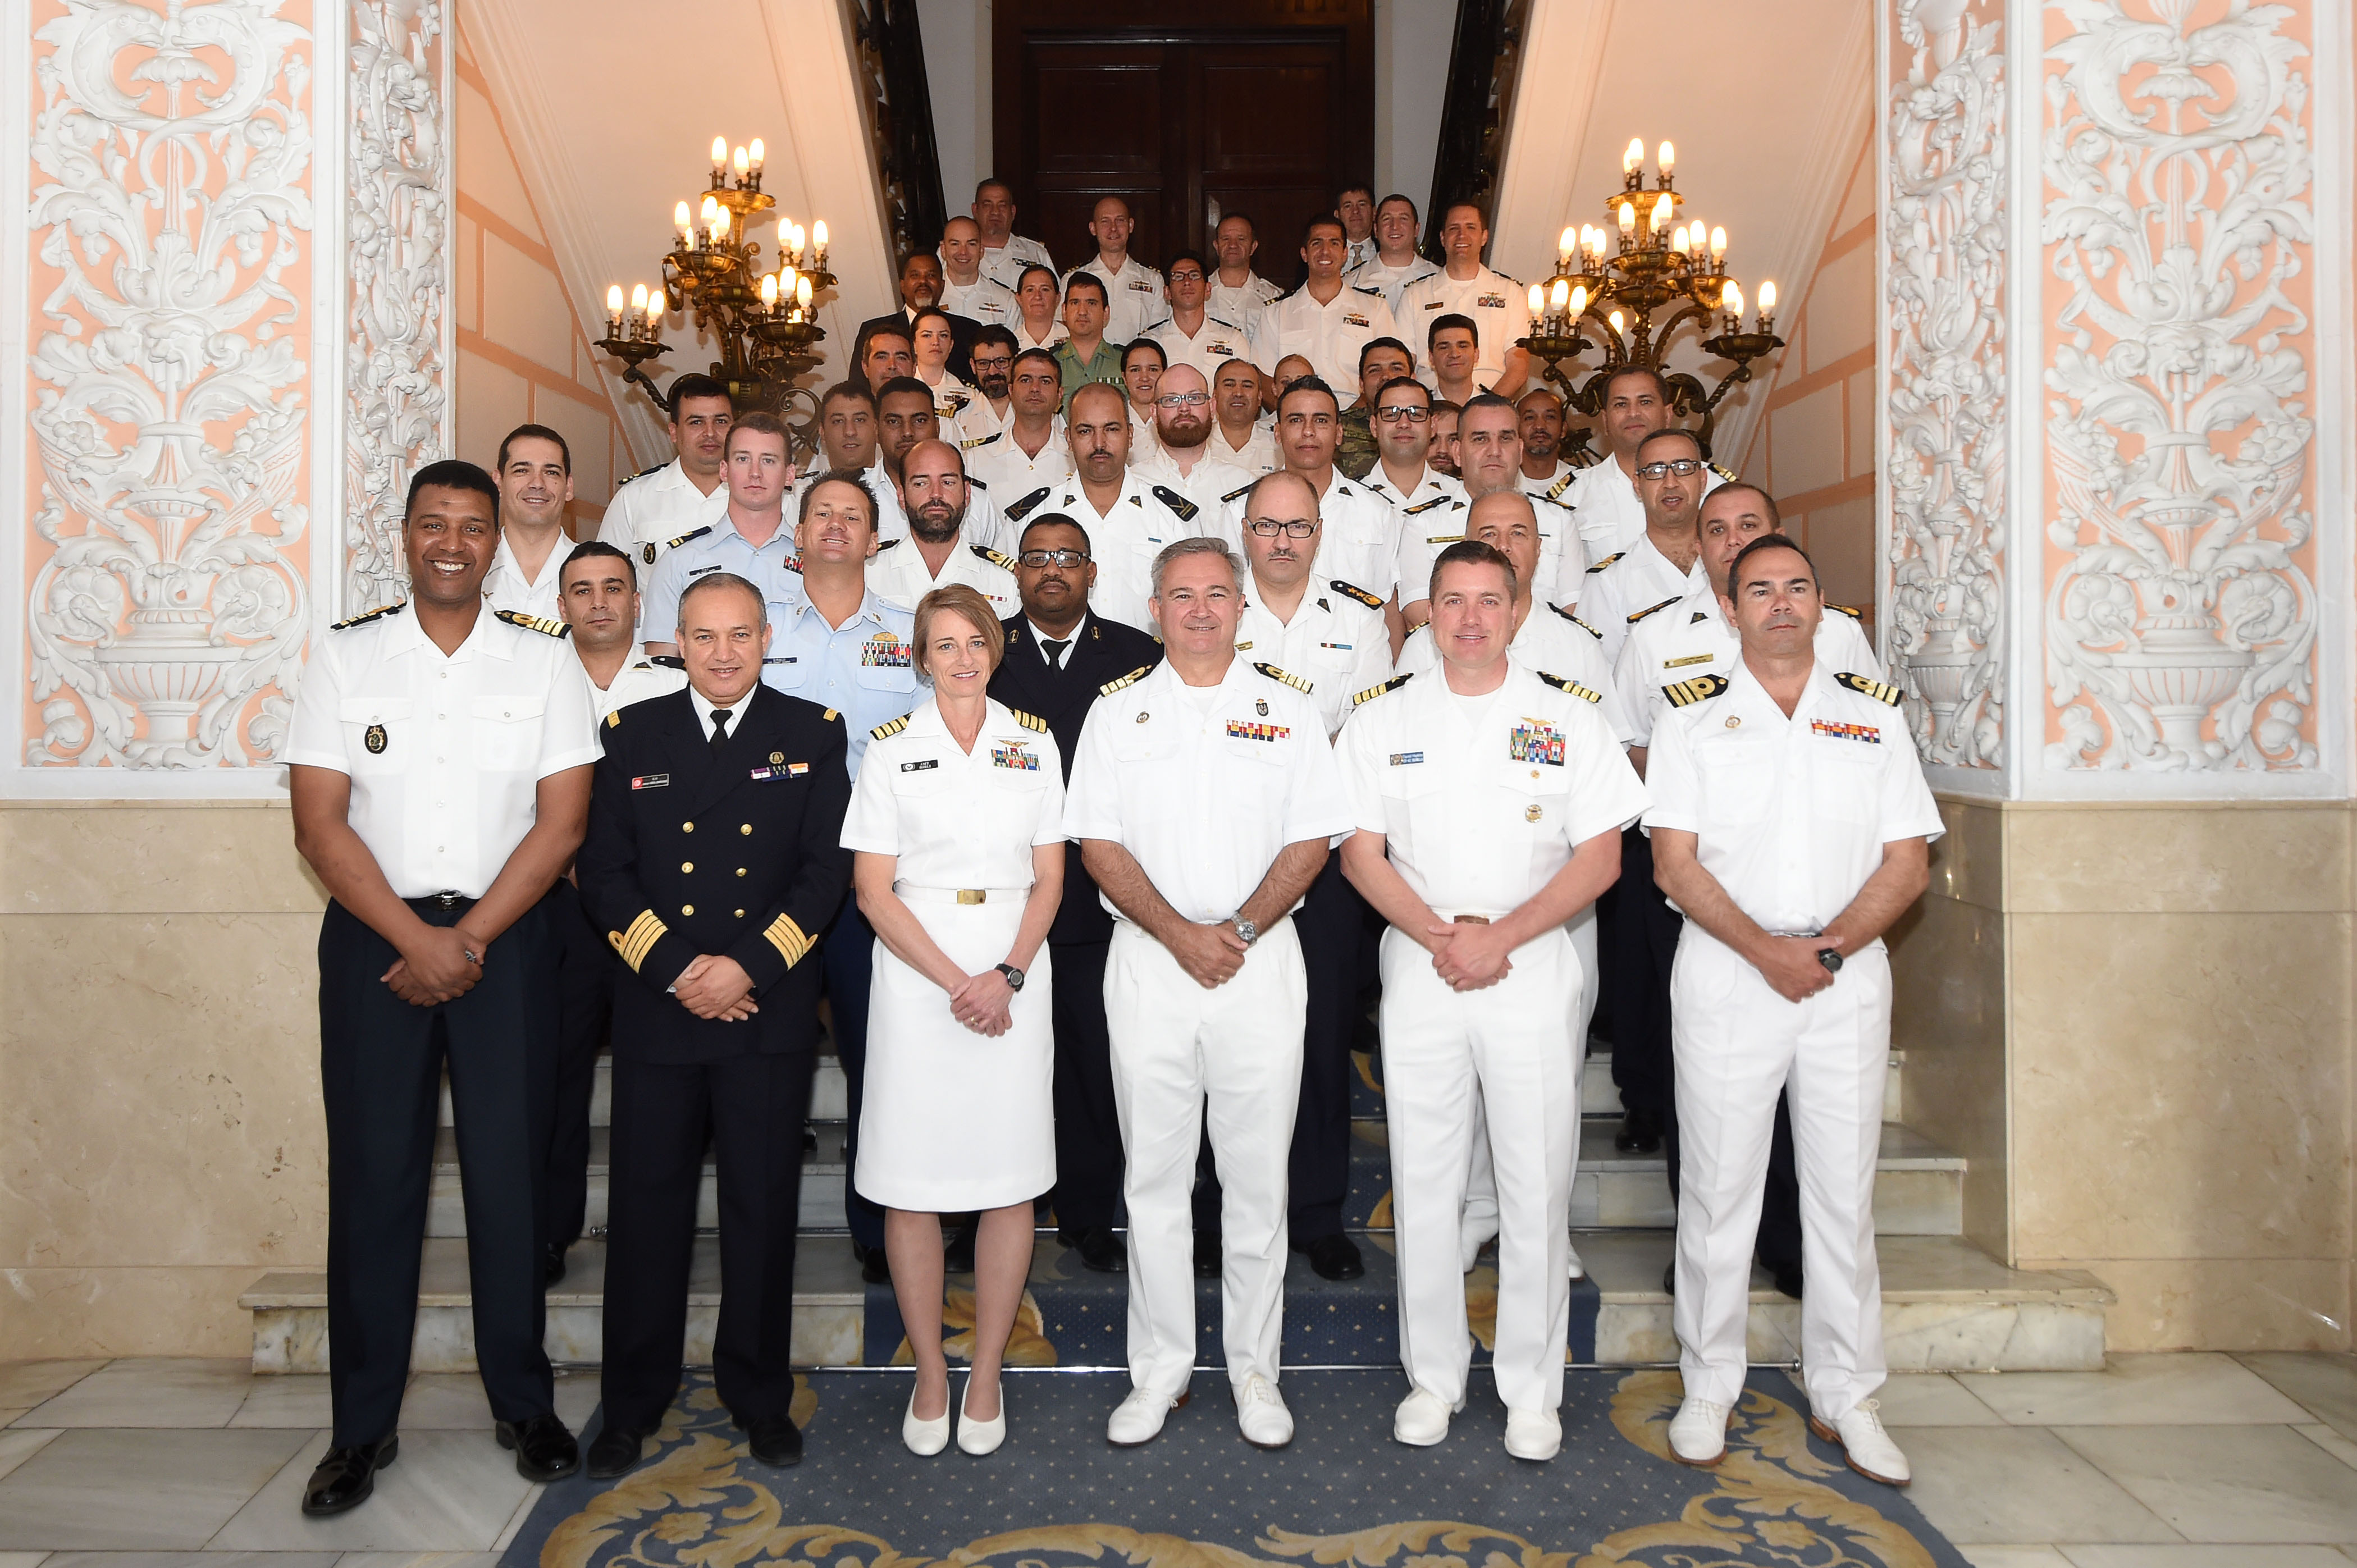 170510-N-XT273-031 CARTAGENA, Spain (May 10, 2017) Exercise Phoenix Express 2017 leadership pose for a group photo after opening ceremonies at the Spanish Naval Base Arsenal de Cartagena May 10, 2017. Phoenix Express, sponsored by U.S. Africa Command and facilitated by U.S. Naval Forces Europe-Africa/U.S. 6th Fleet, is designed to improve regional cooperation, increase maritime domain awareness information sharing practices, and operational capabilities to enhance efforts to achieve safety and security in the Mediterranean Sea.